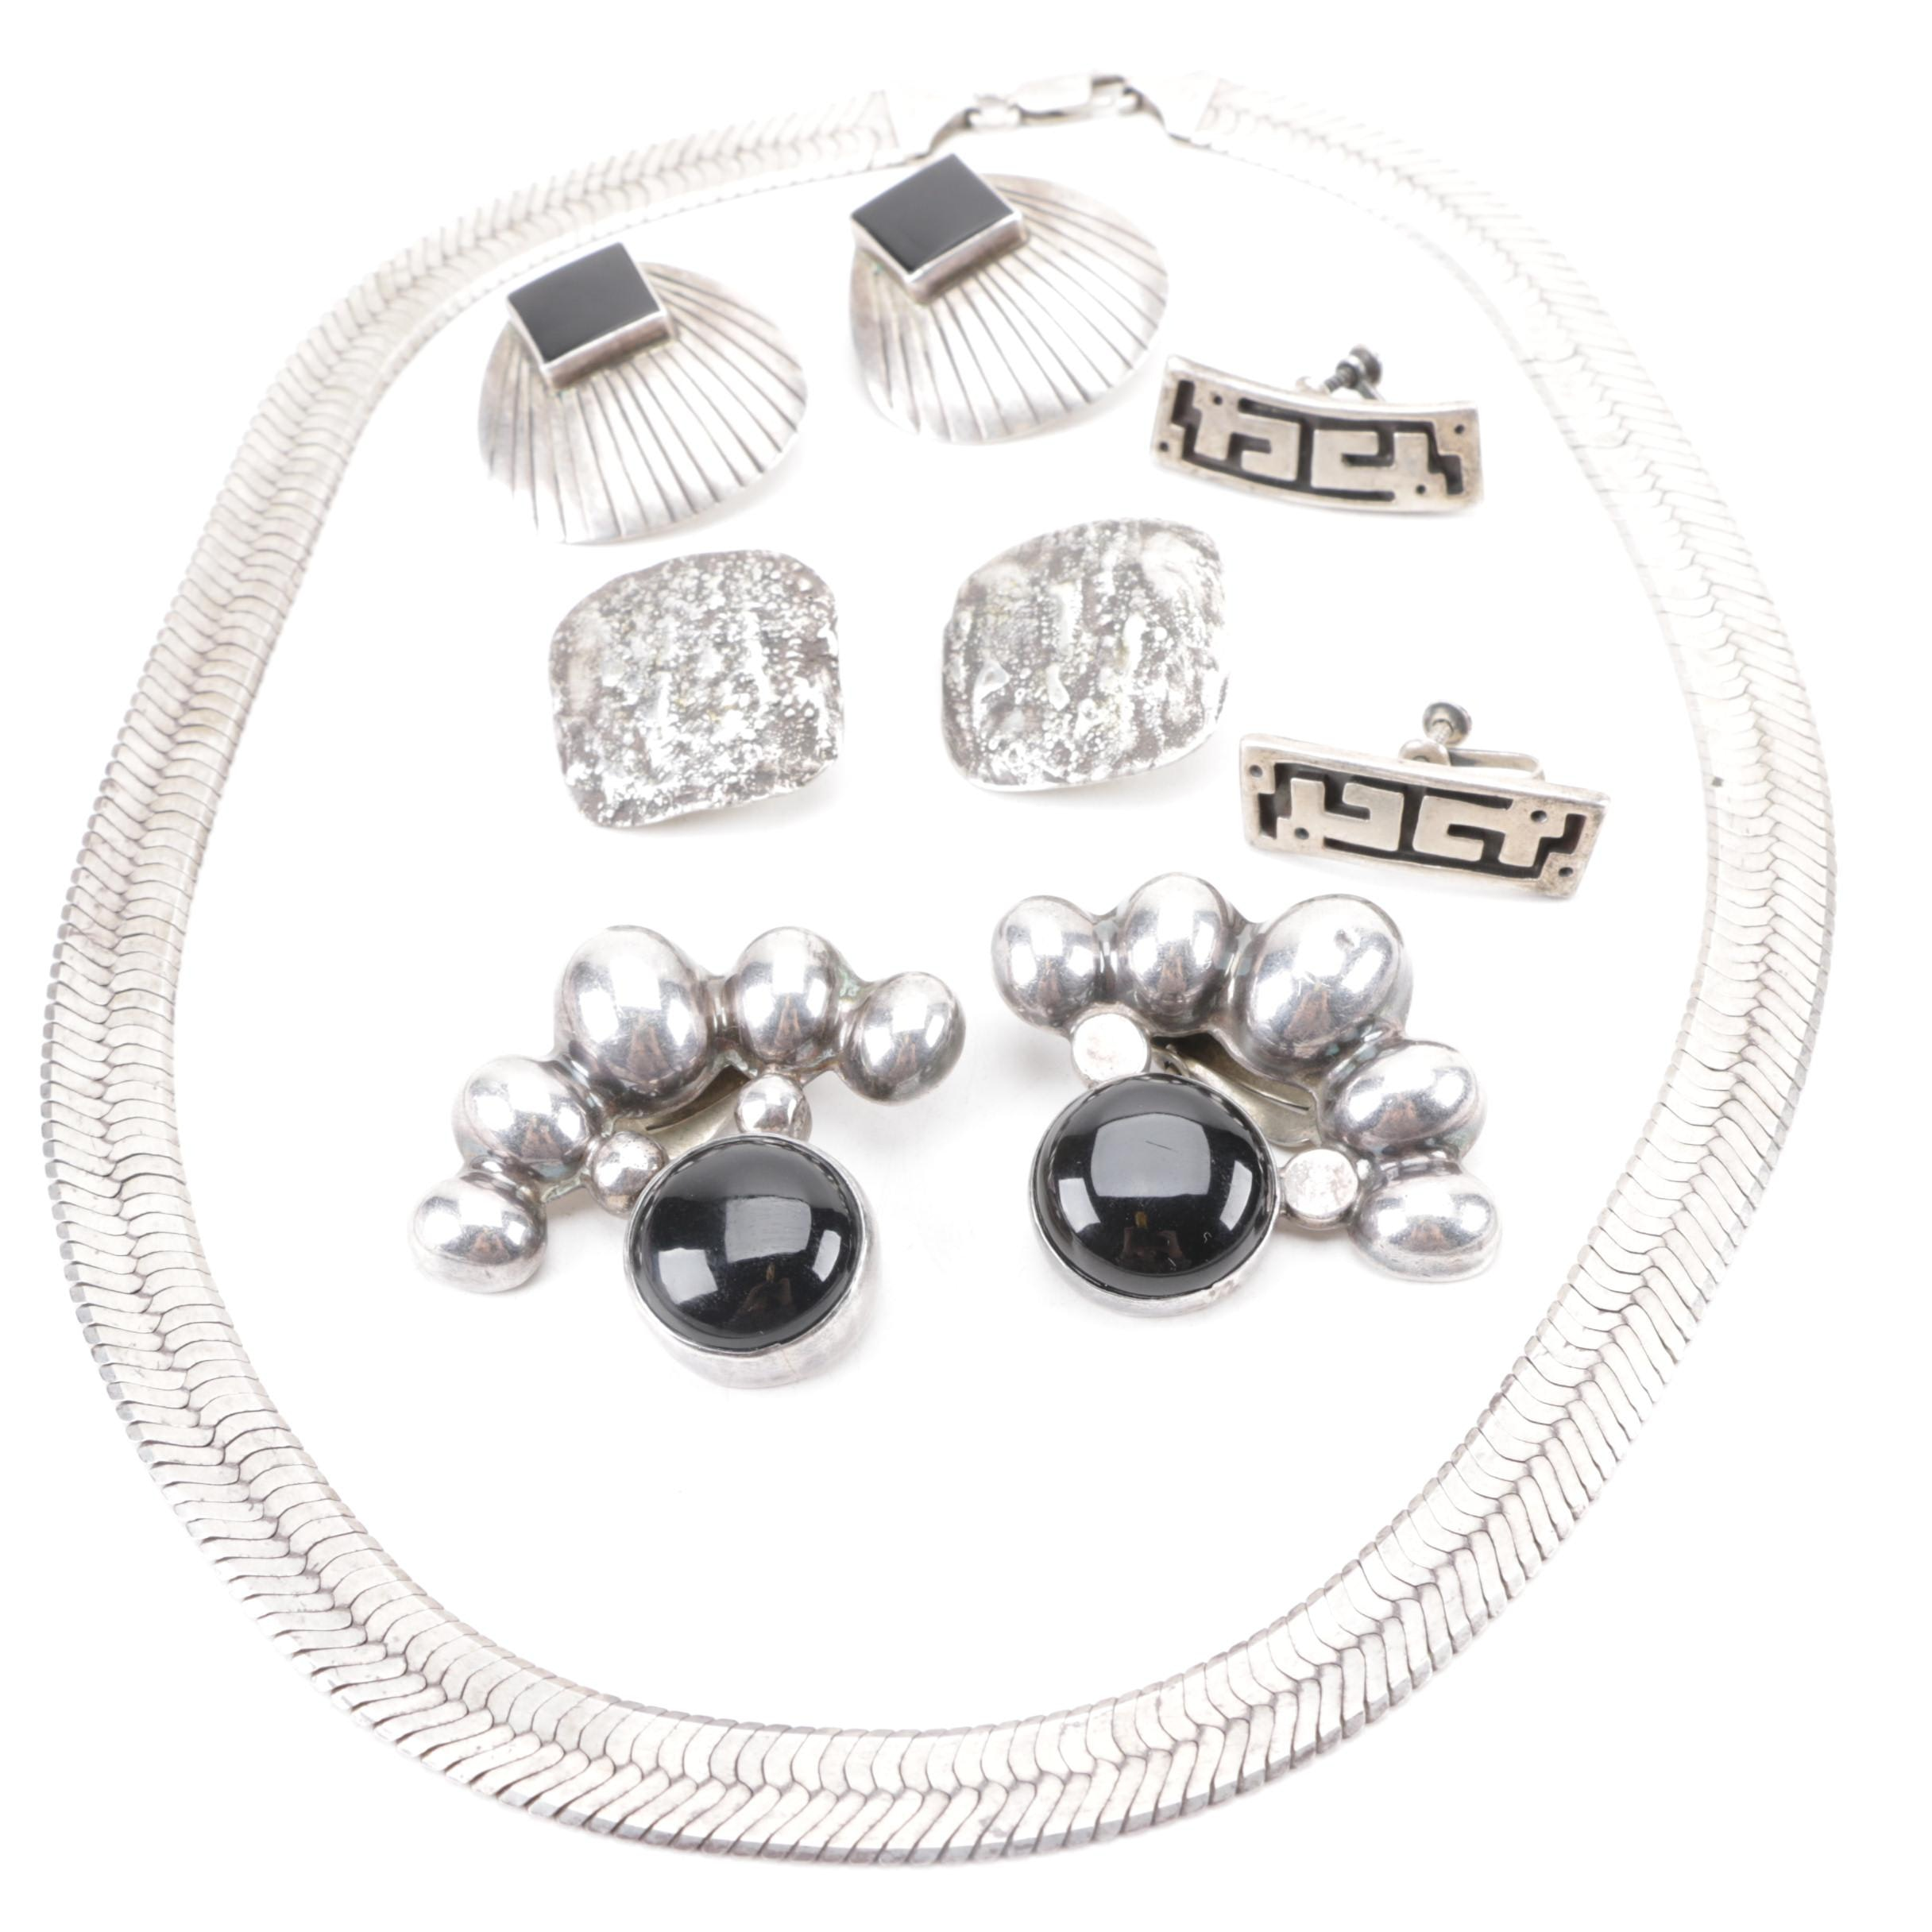 Assortment of Sterling Silver Jewelry Including Onyx